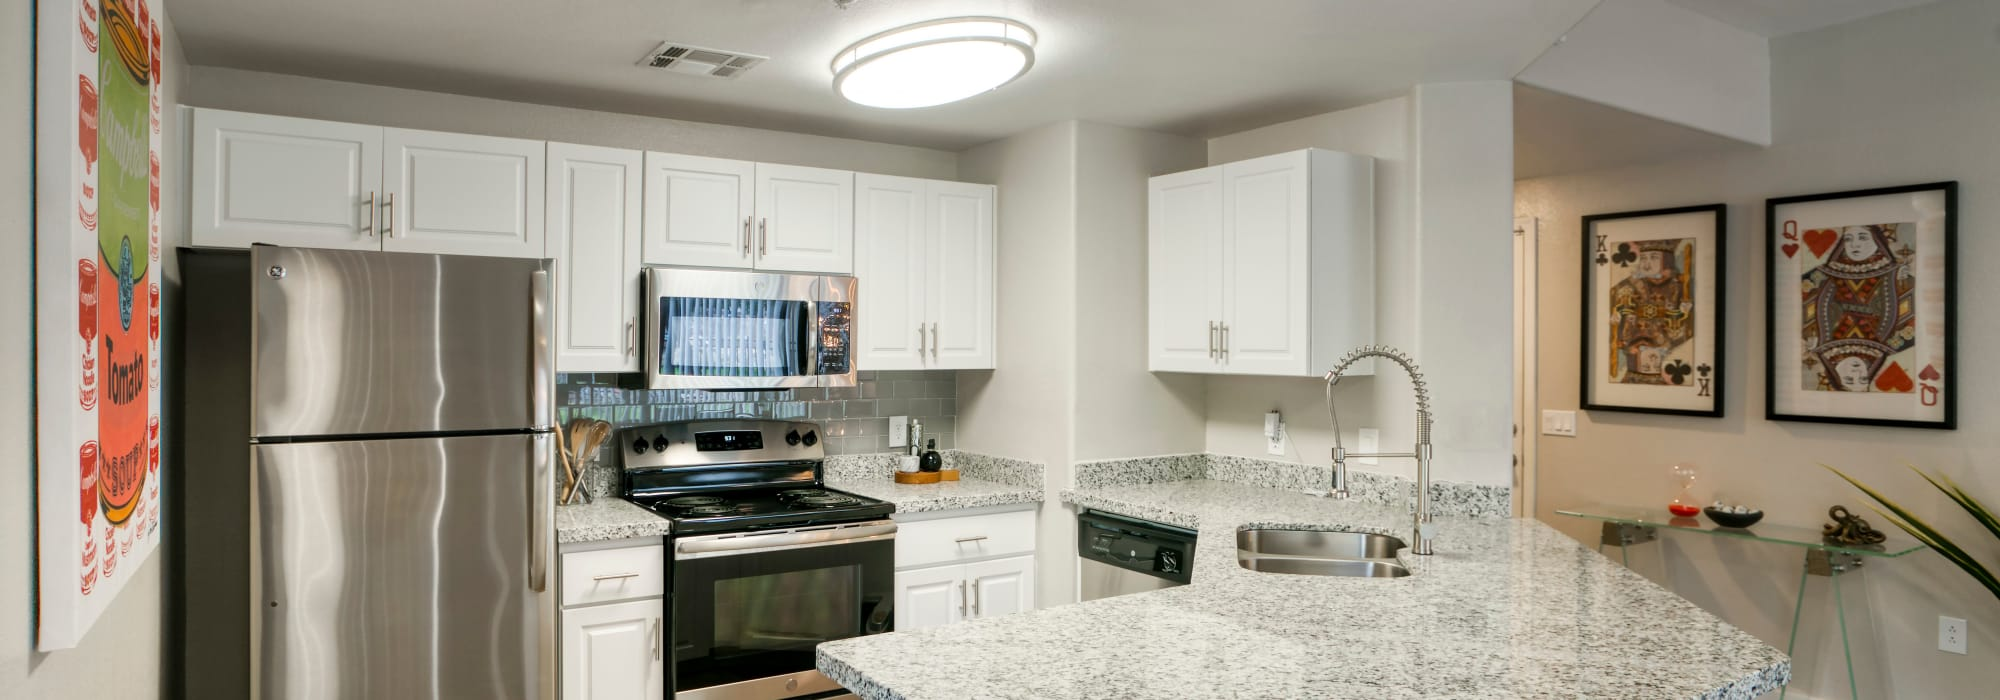 Stainless Steel Appliances at Waterside at Ocotillo